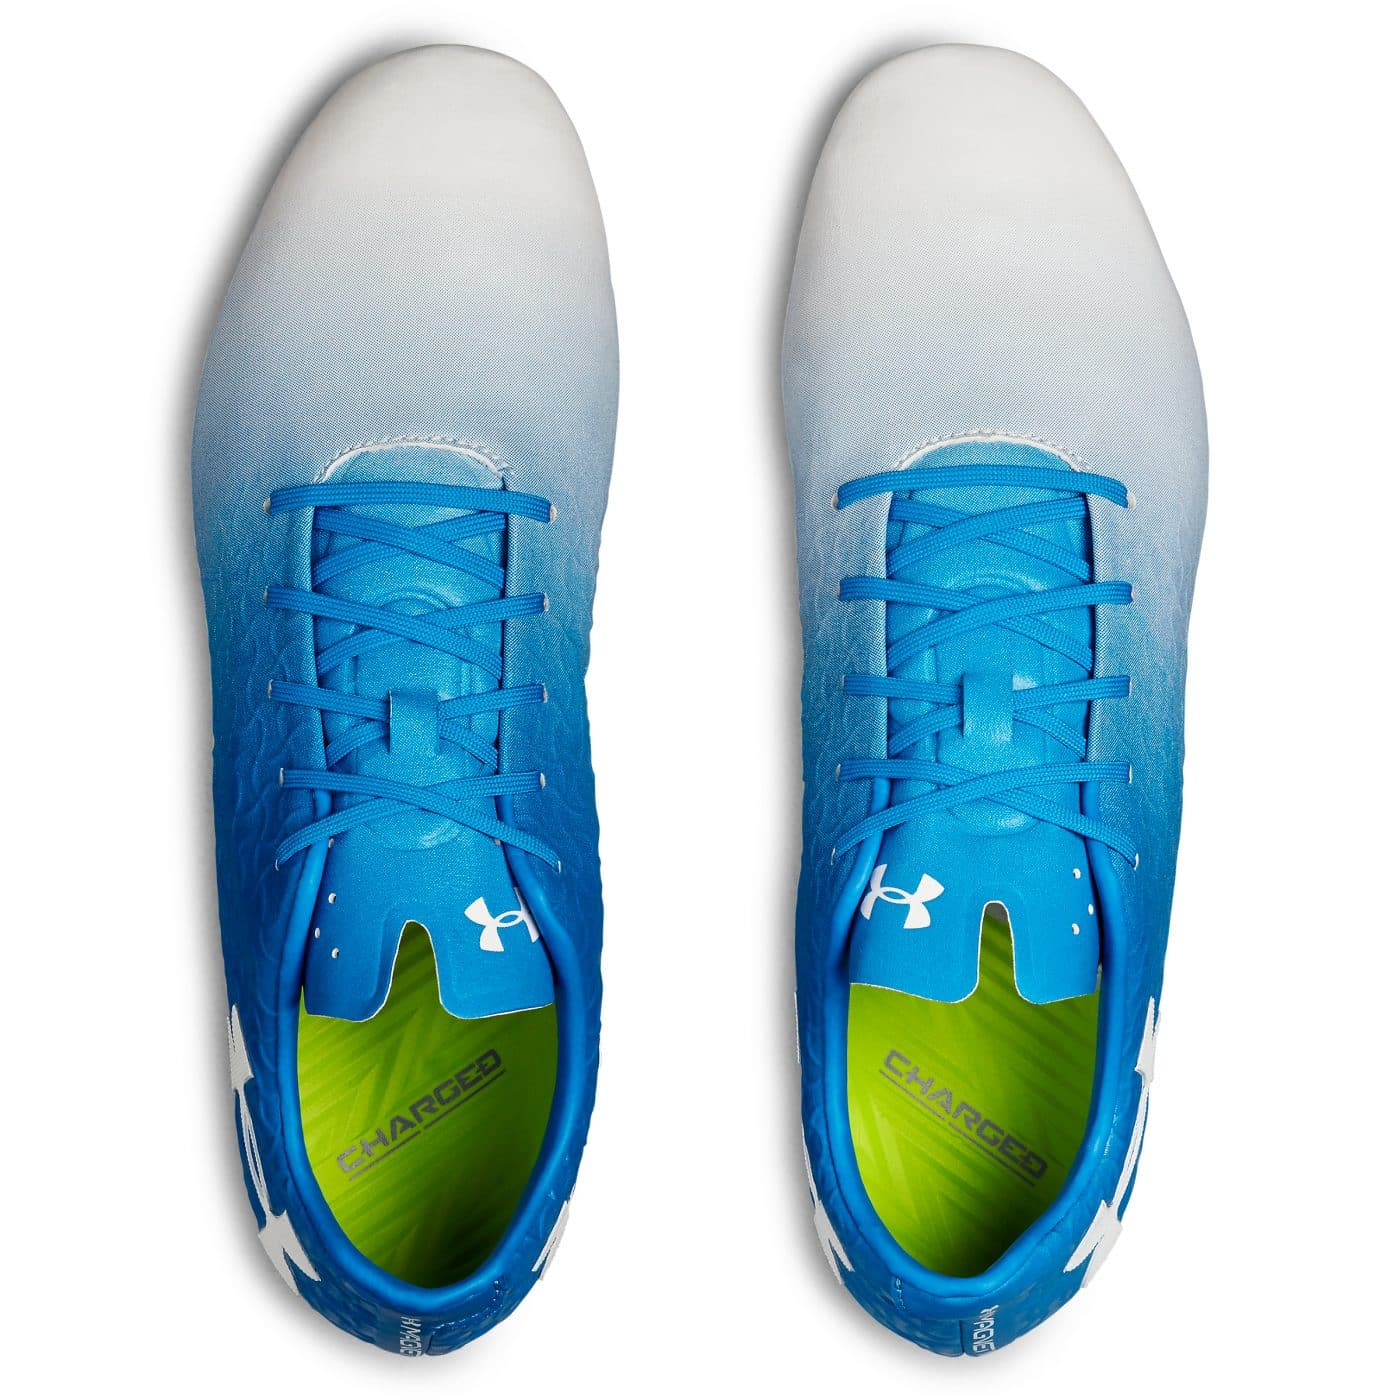 under-armour-magnetico-blue-circuit-4